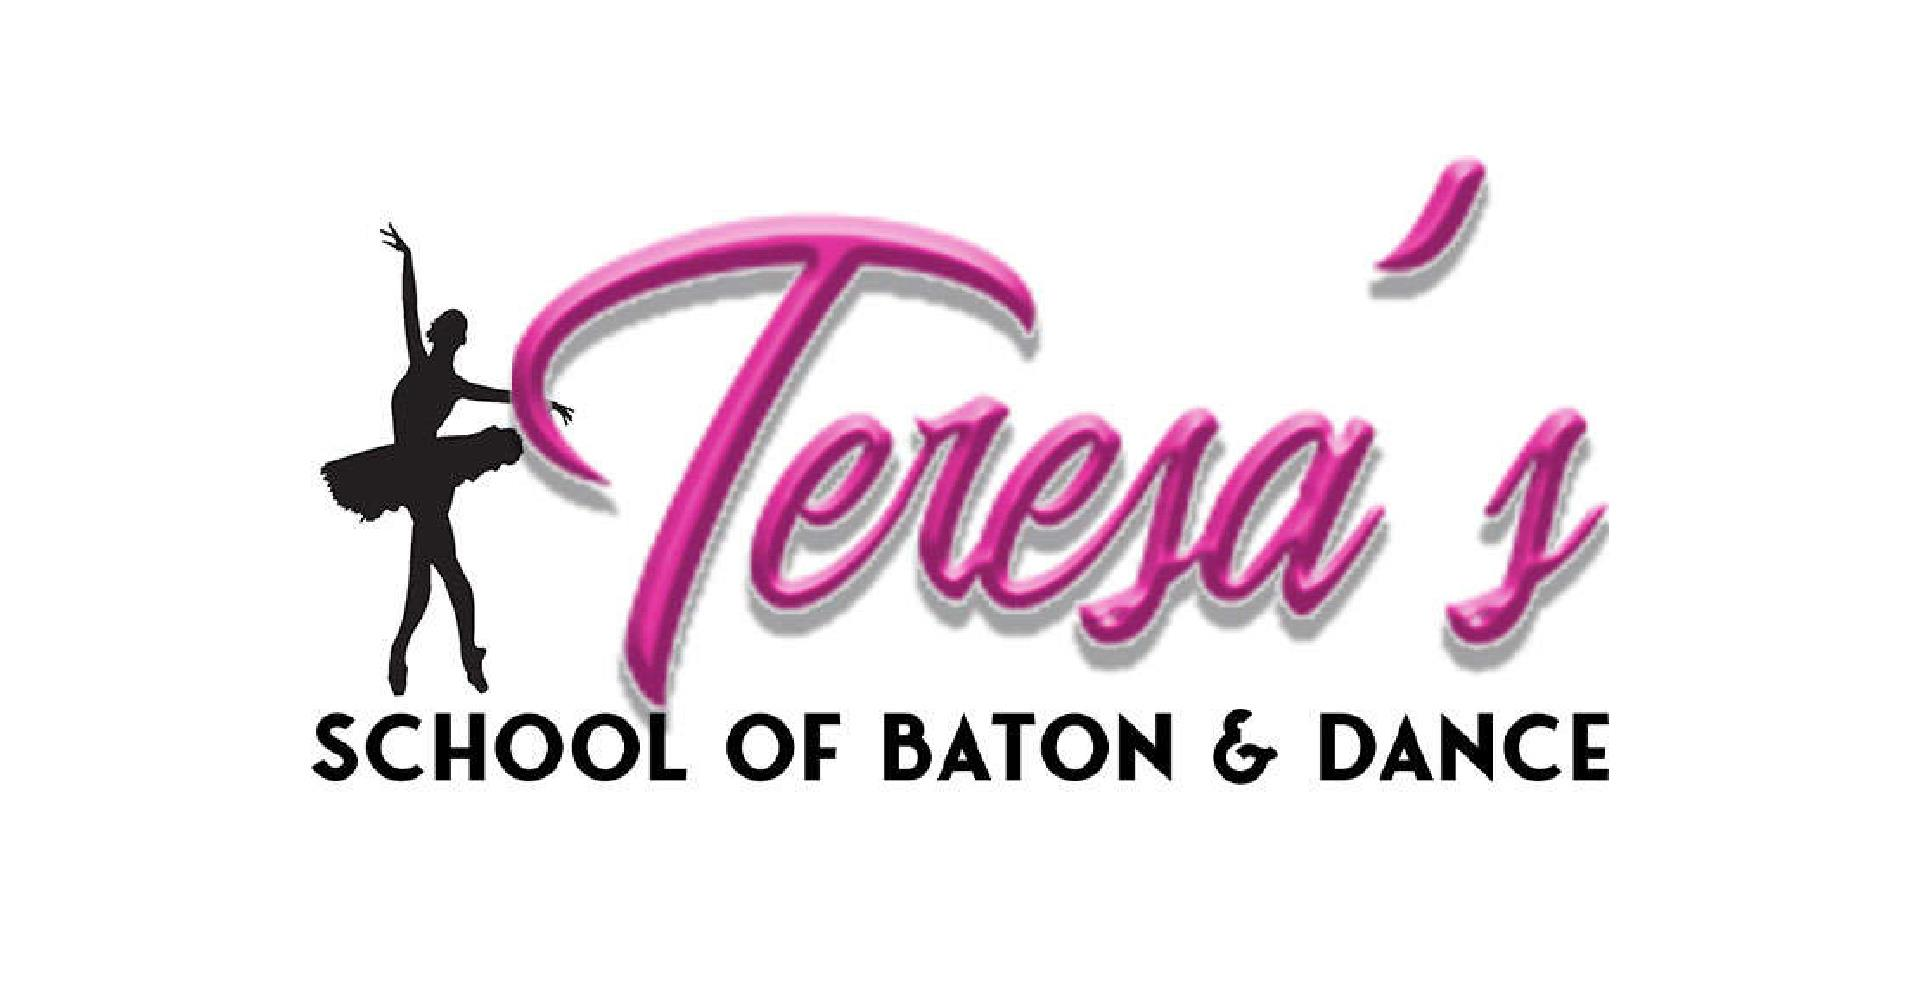 Teresa's School of Baton & Dance